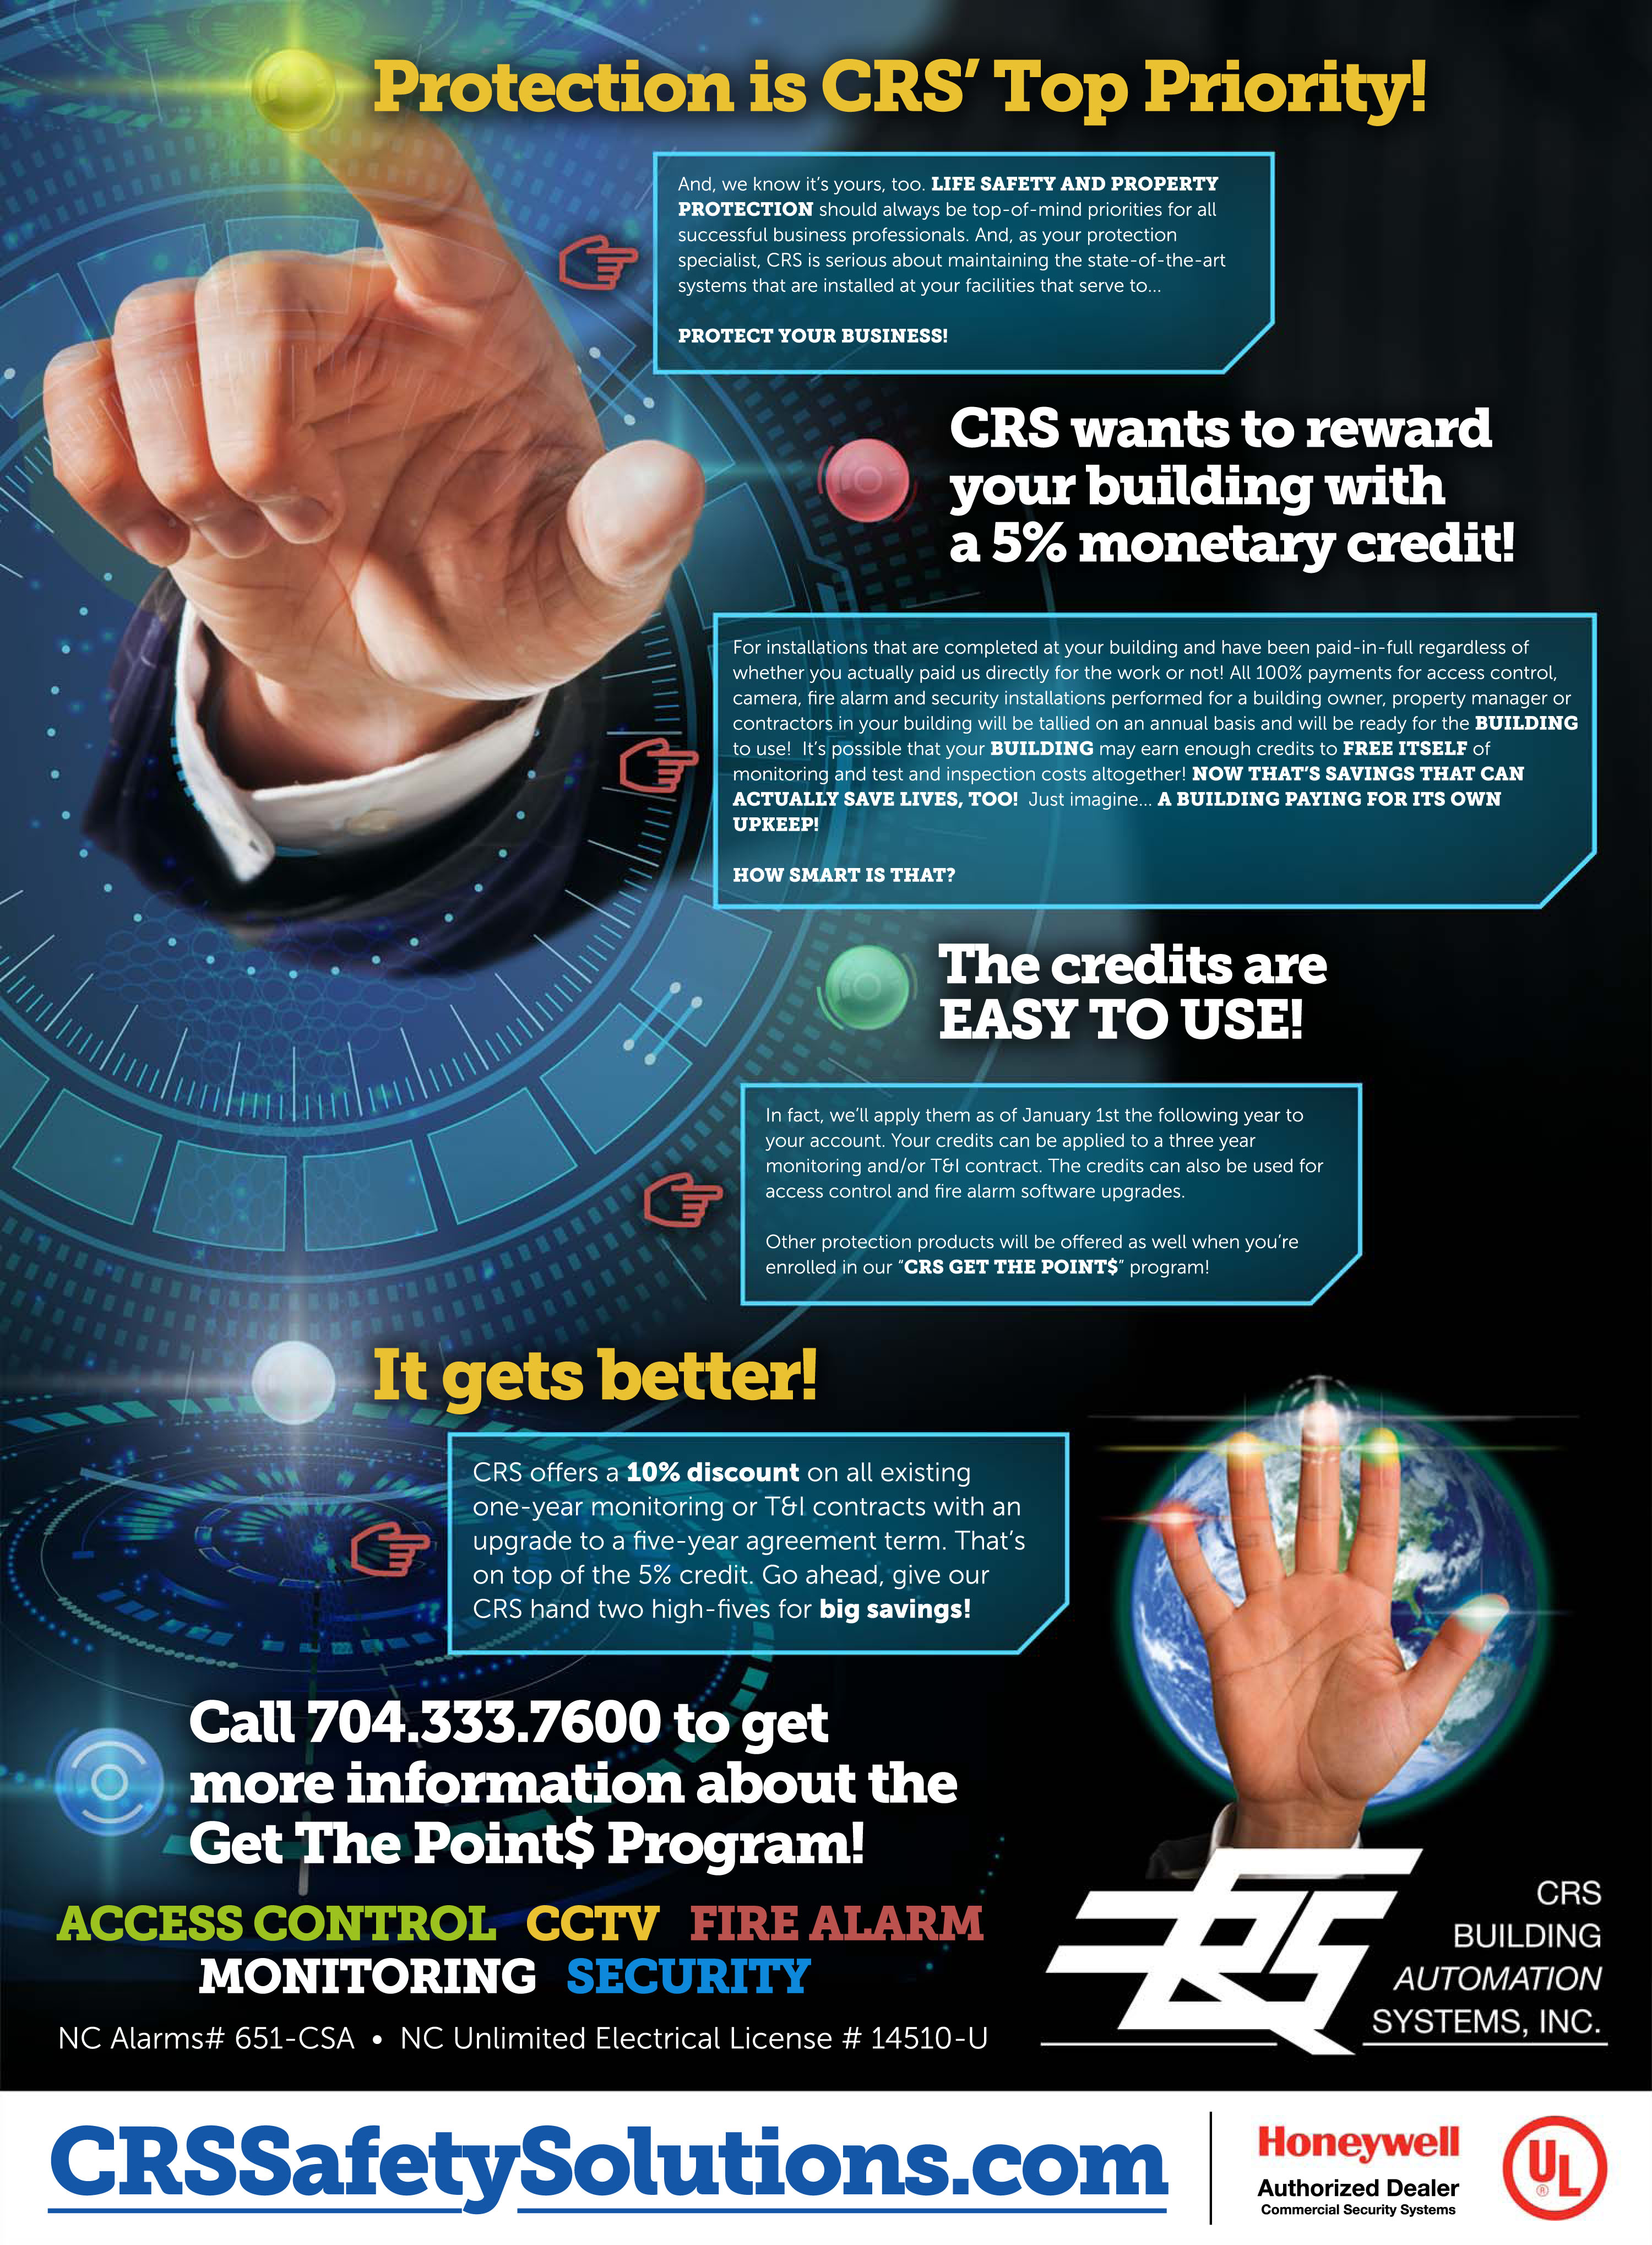 CRS Building Automation Systems, Inc  • CRS in the News